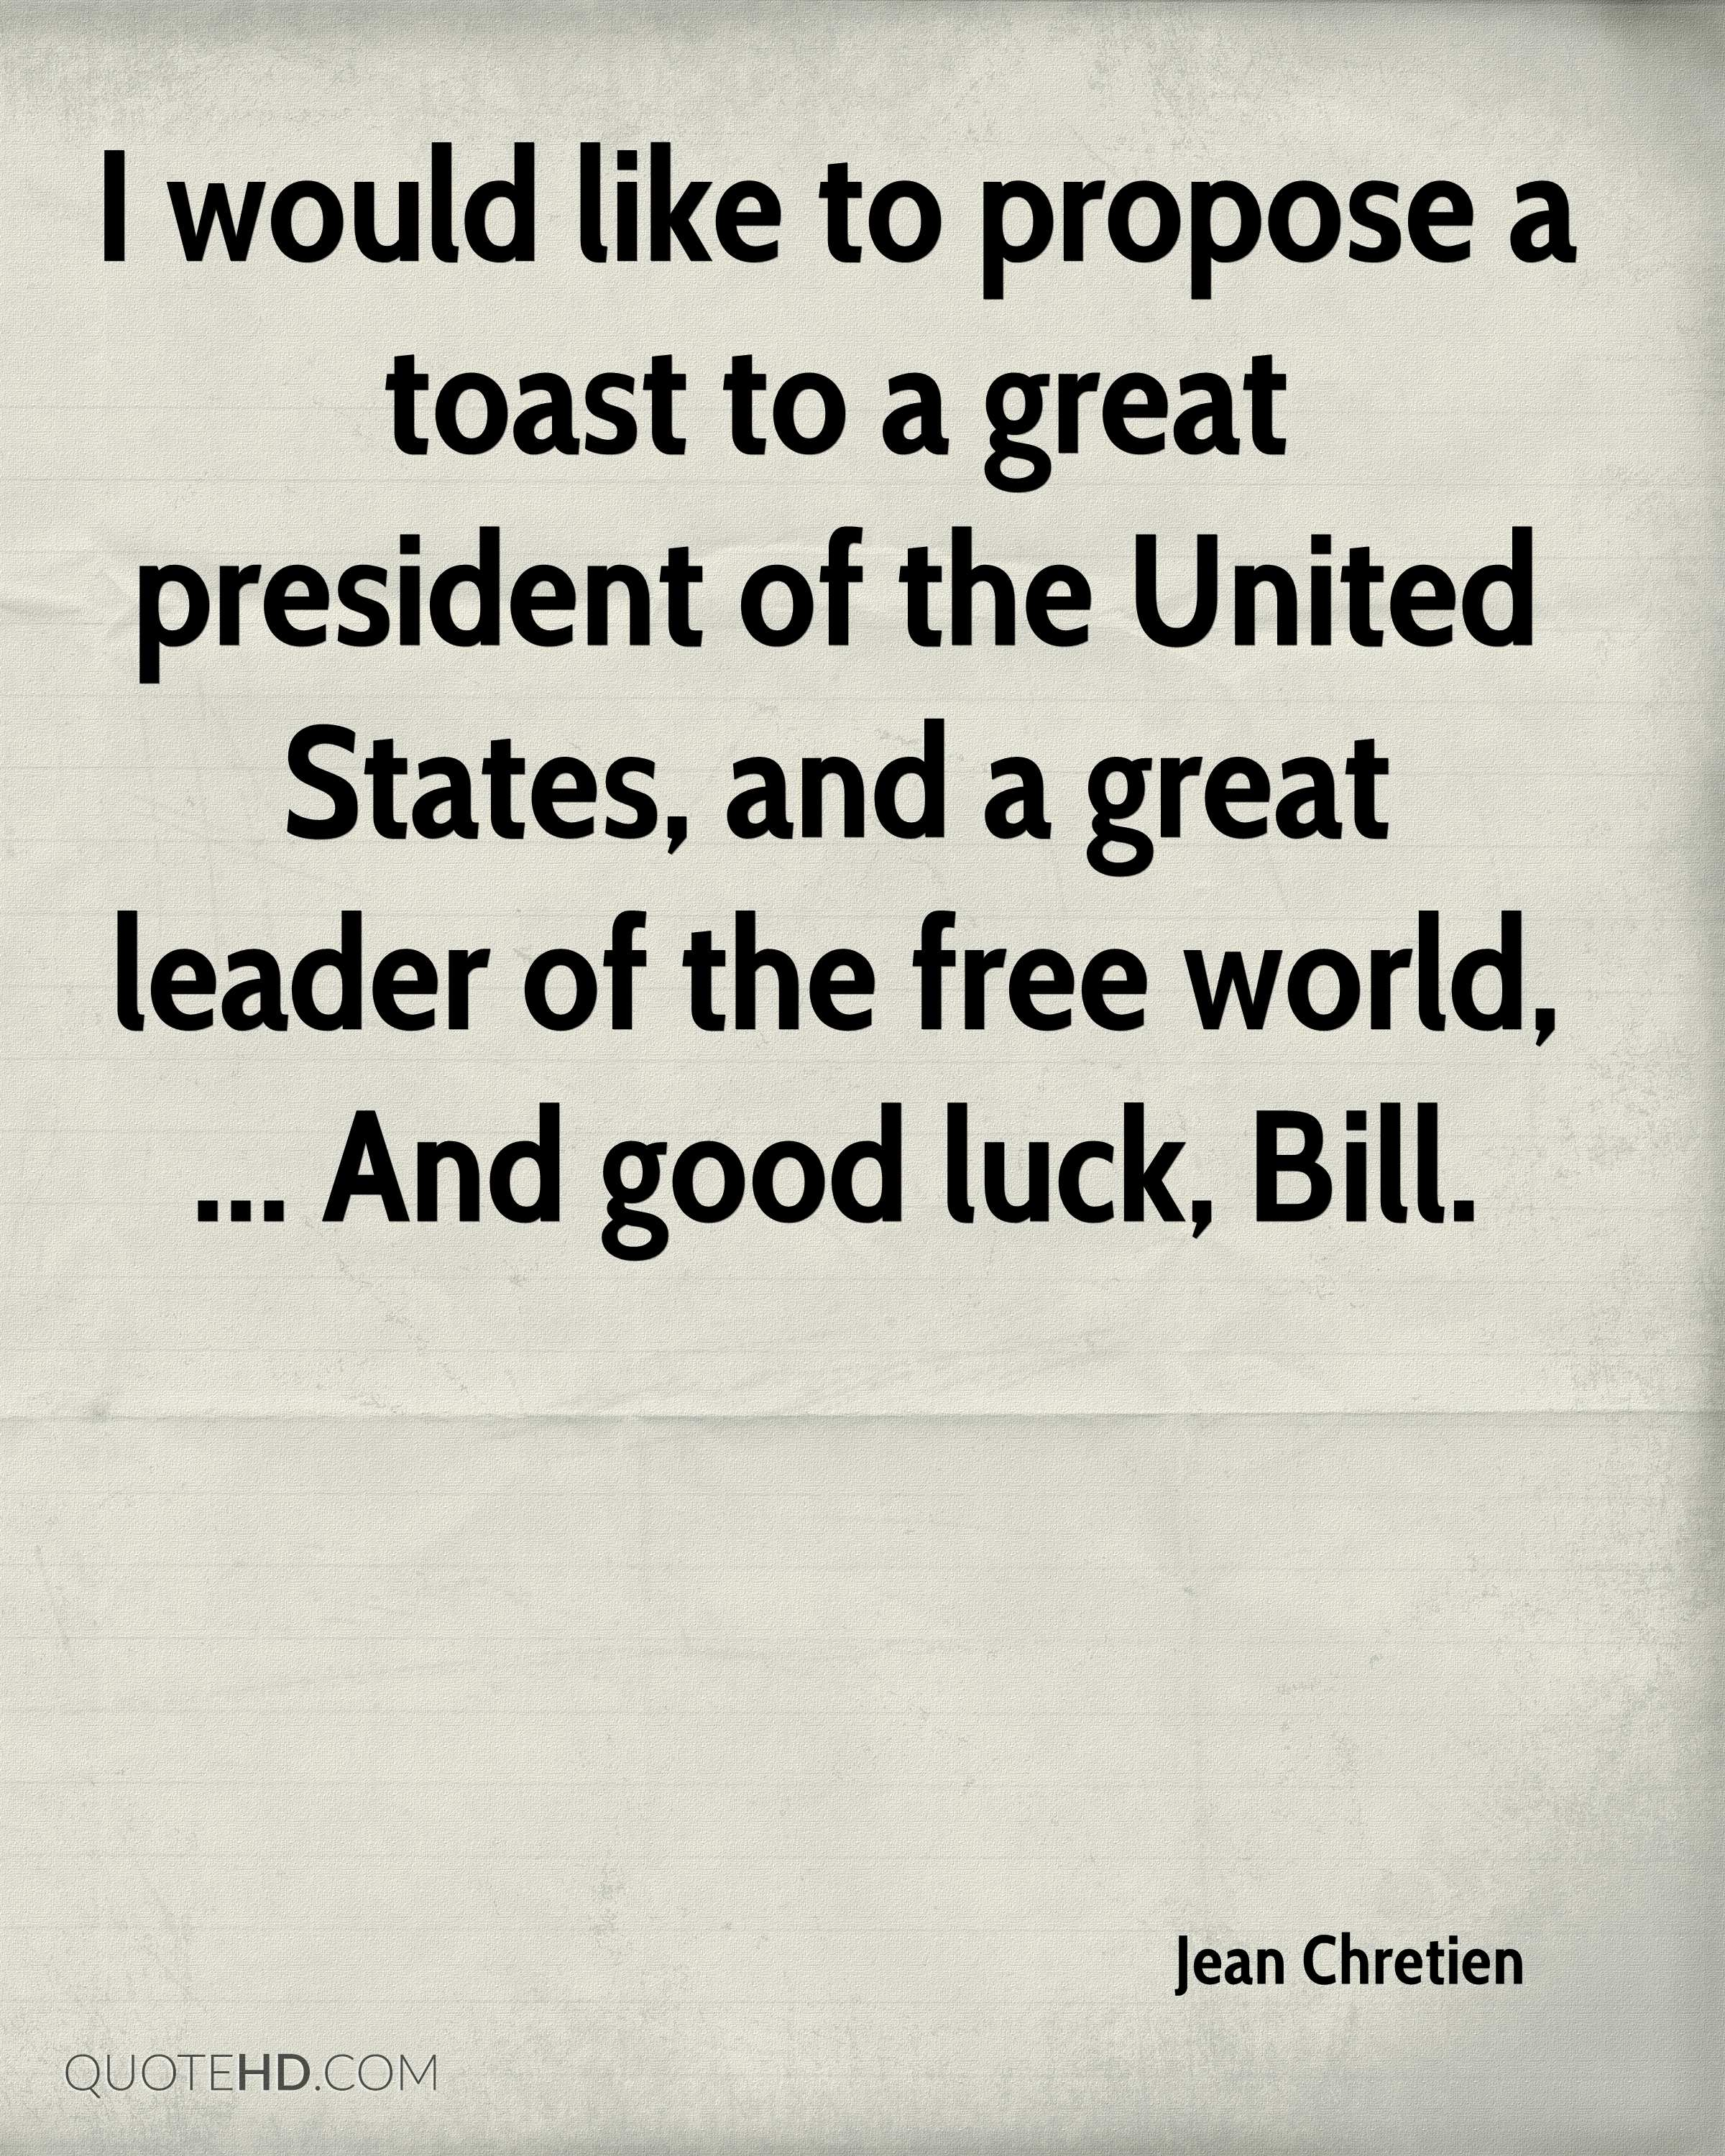 I would like to propose a toast to a great president of the United States, and a great leader of the free world, ... And good luck, Bill.